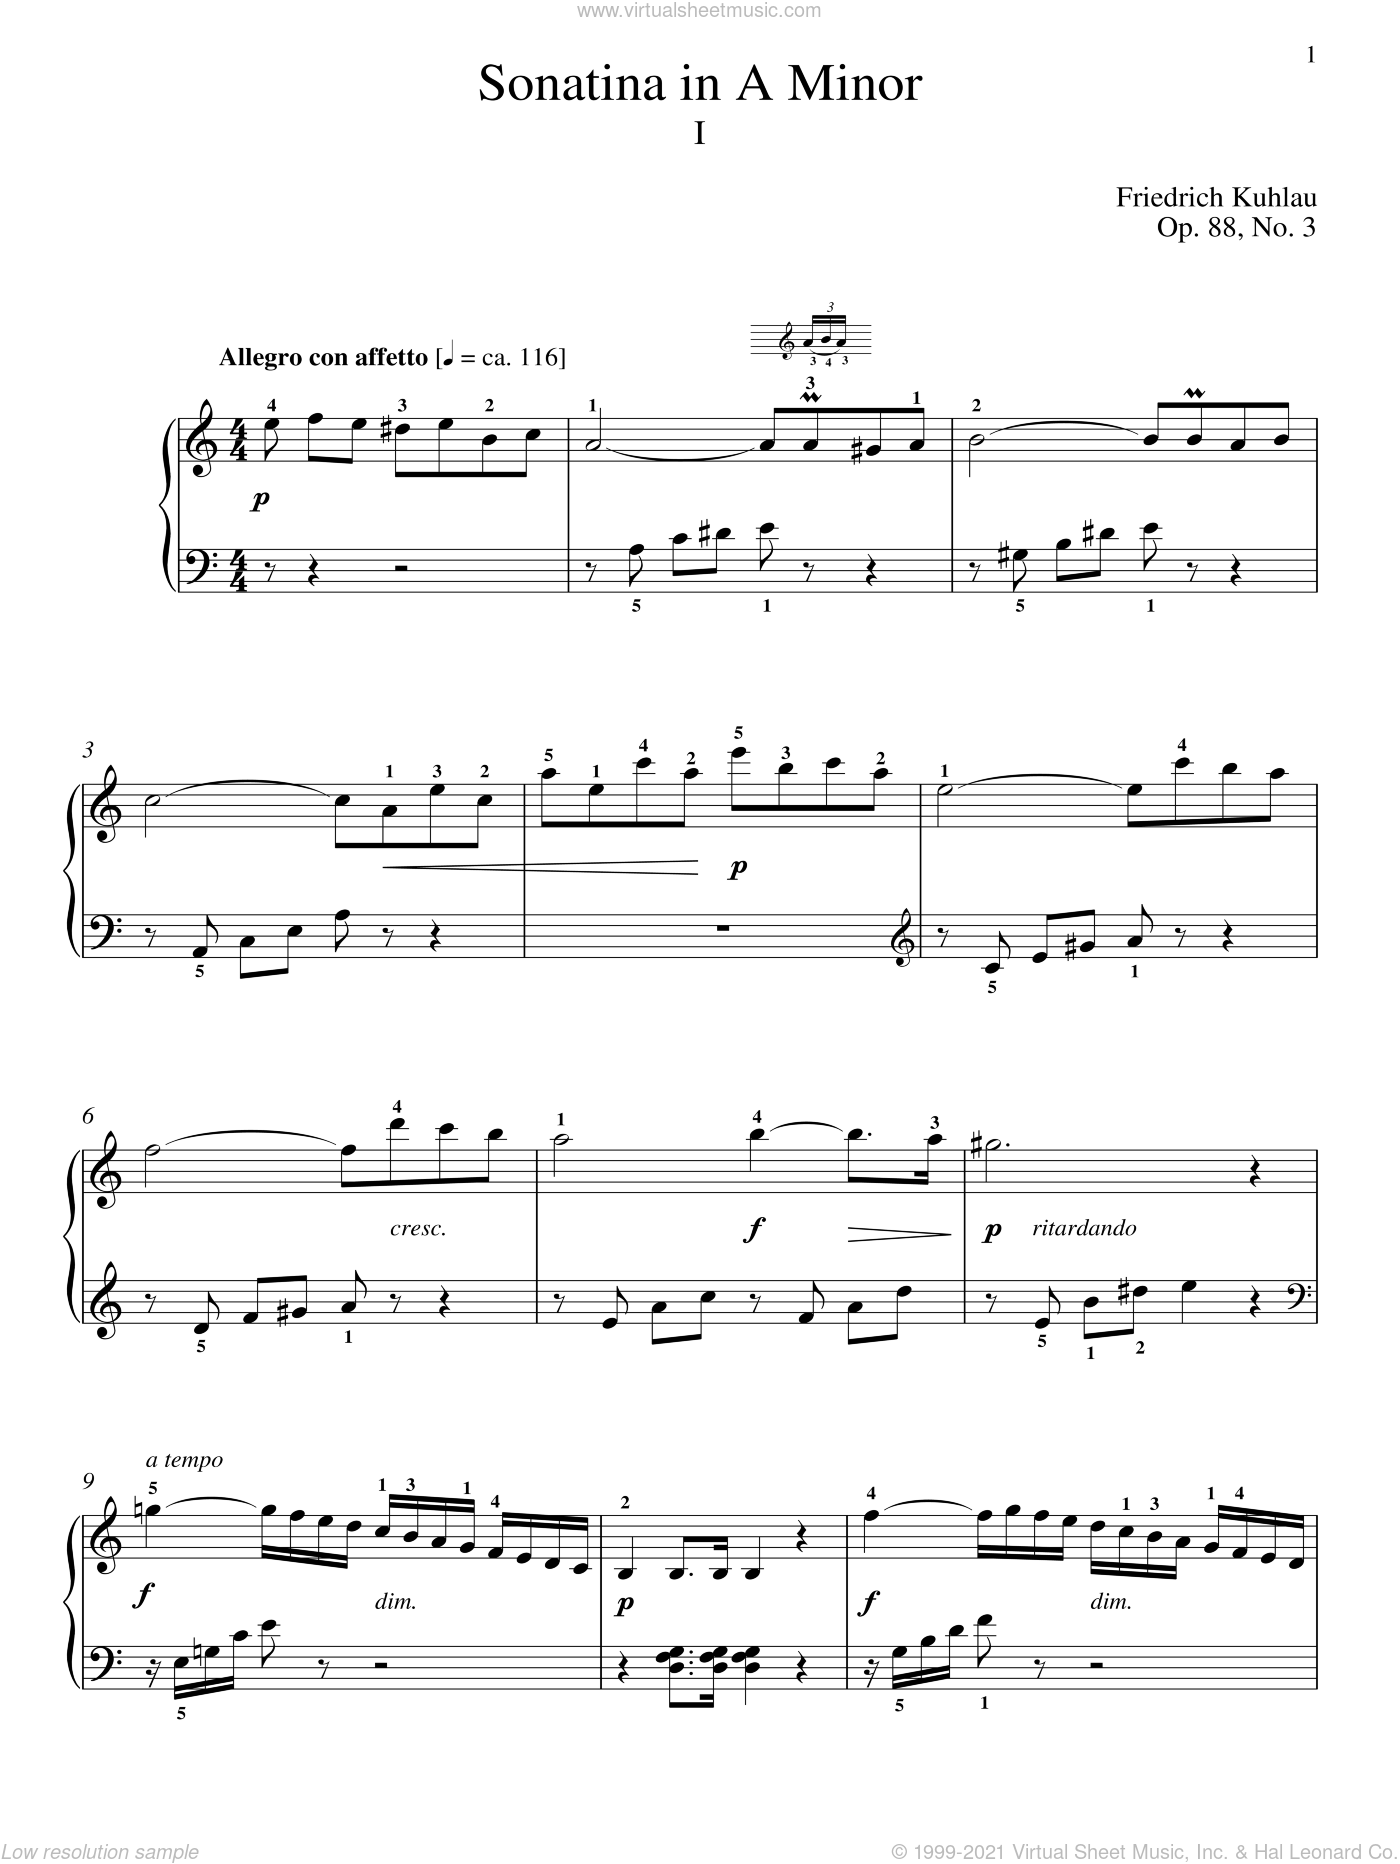 Sonatina In A Minor, Op. 88, No. 3 sheet music for piano solo by Friedrich Daniel Rudolf Kuhlau